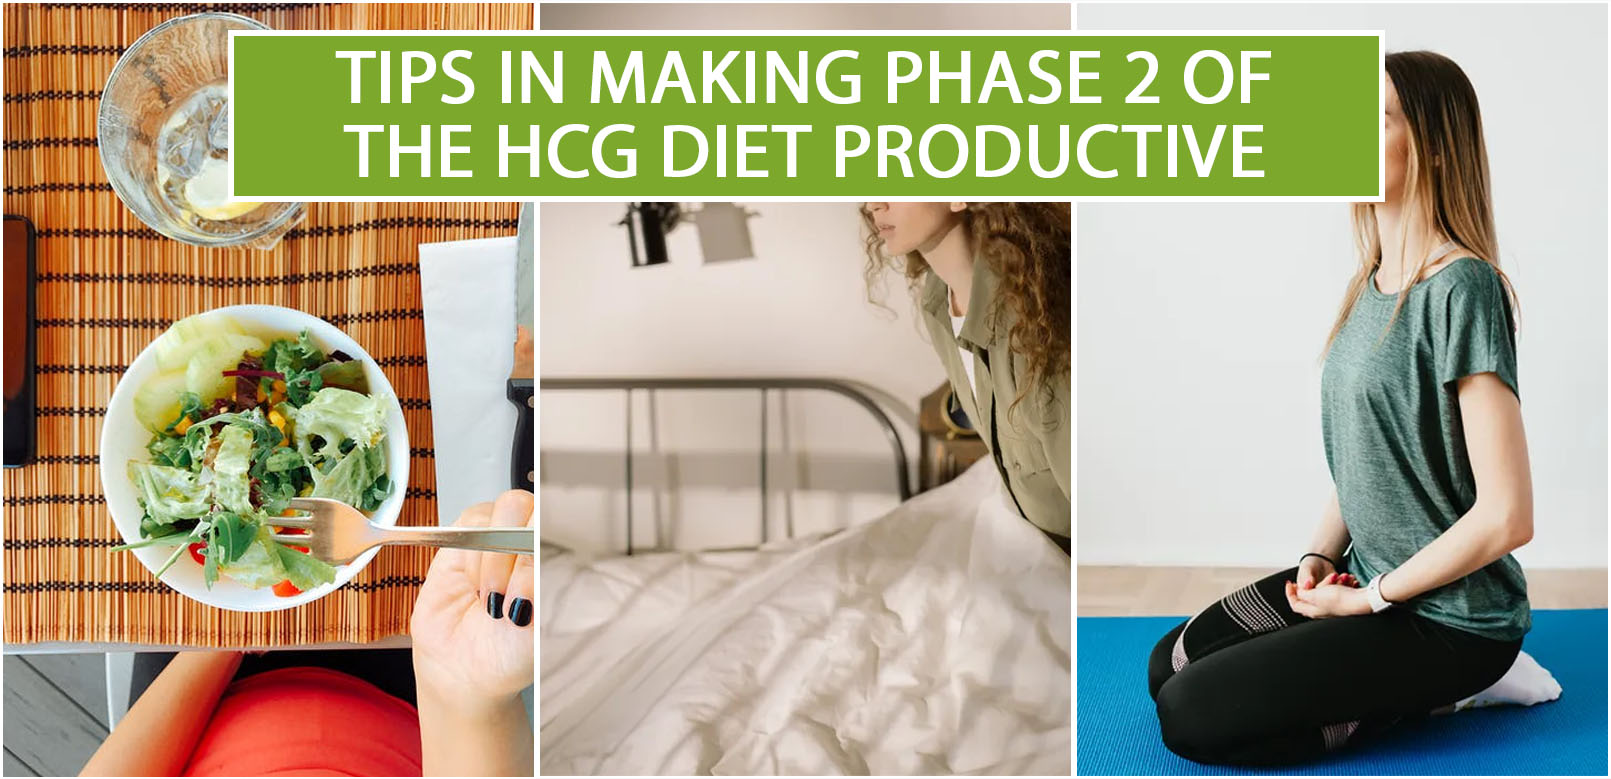 TIPS IN MAKING PHASE 2 OF THE HCG DIET PRODUCTIVE